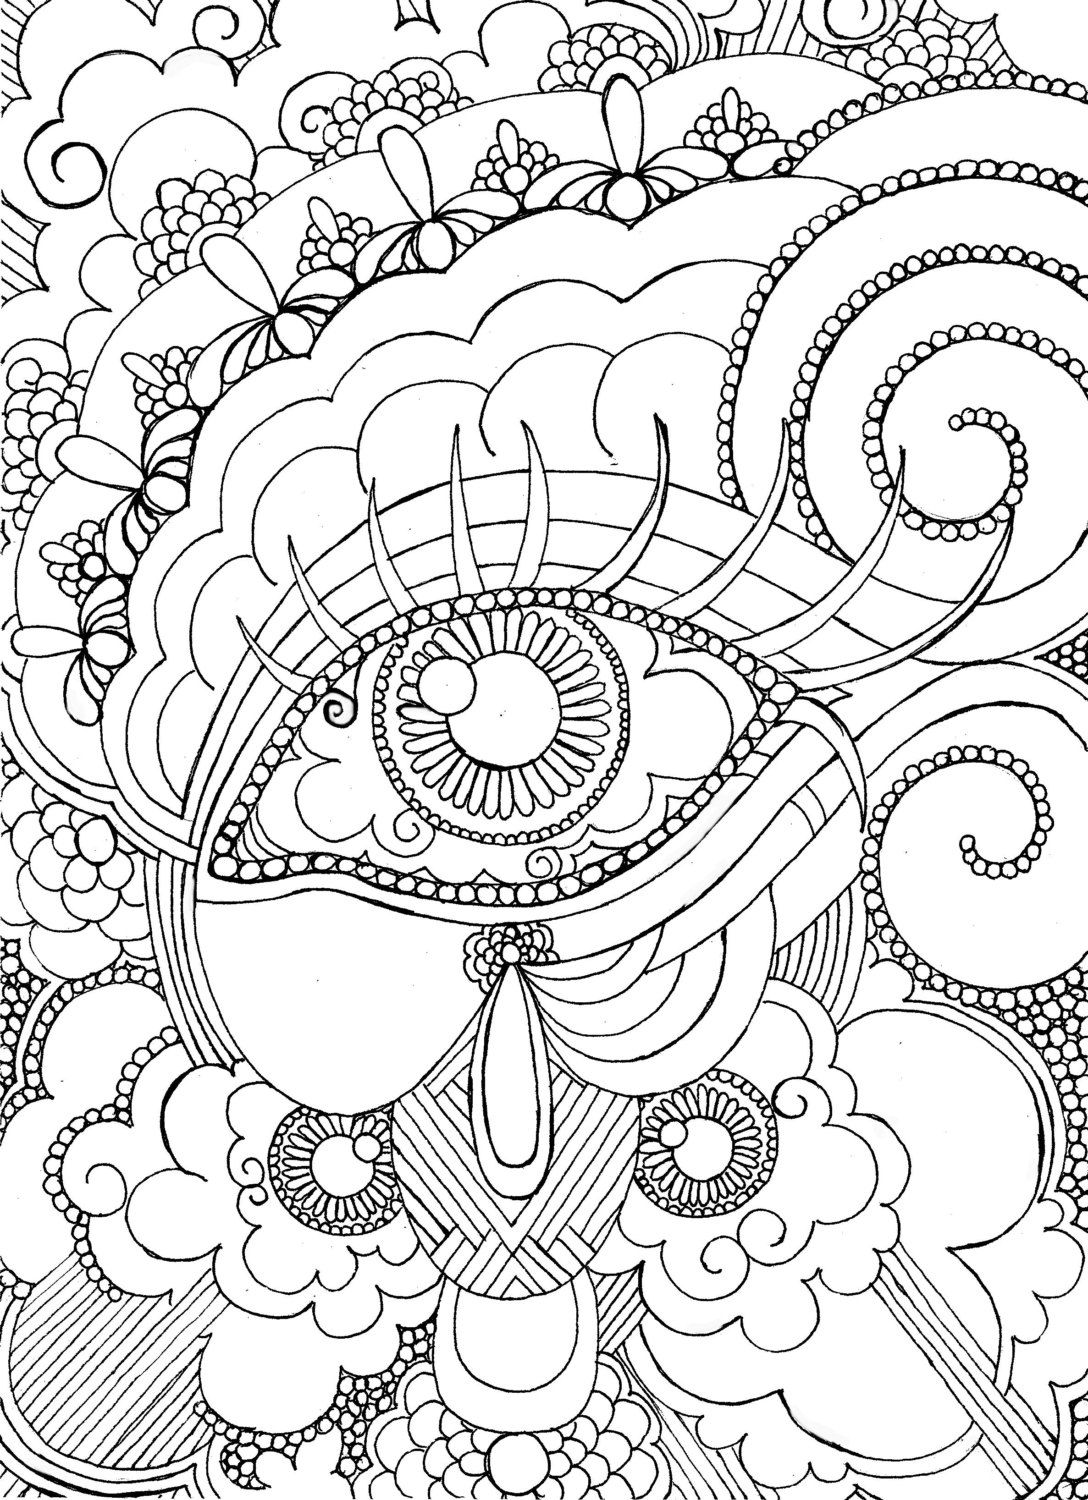 Icolor Steampunk Moon Coloring Pages Steampunk Coloring Mandala Coloring Pages